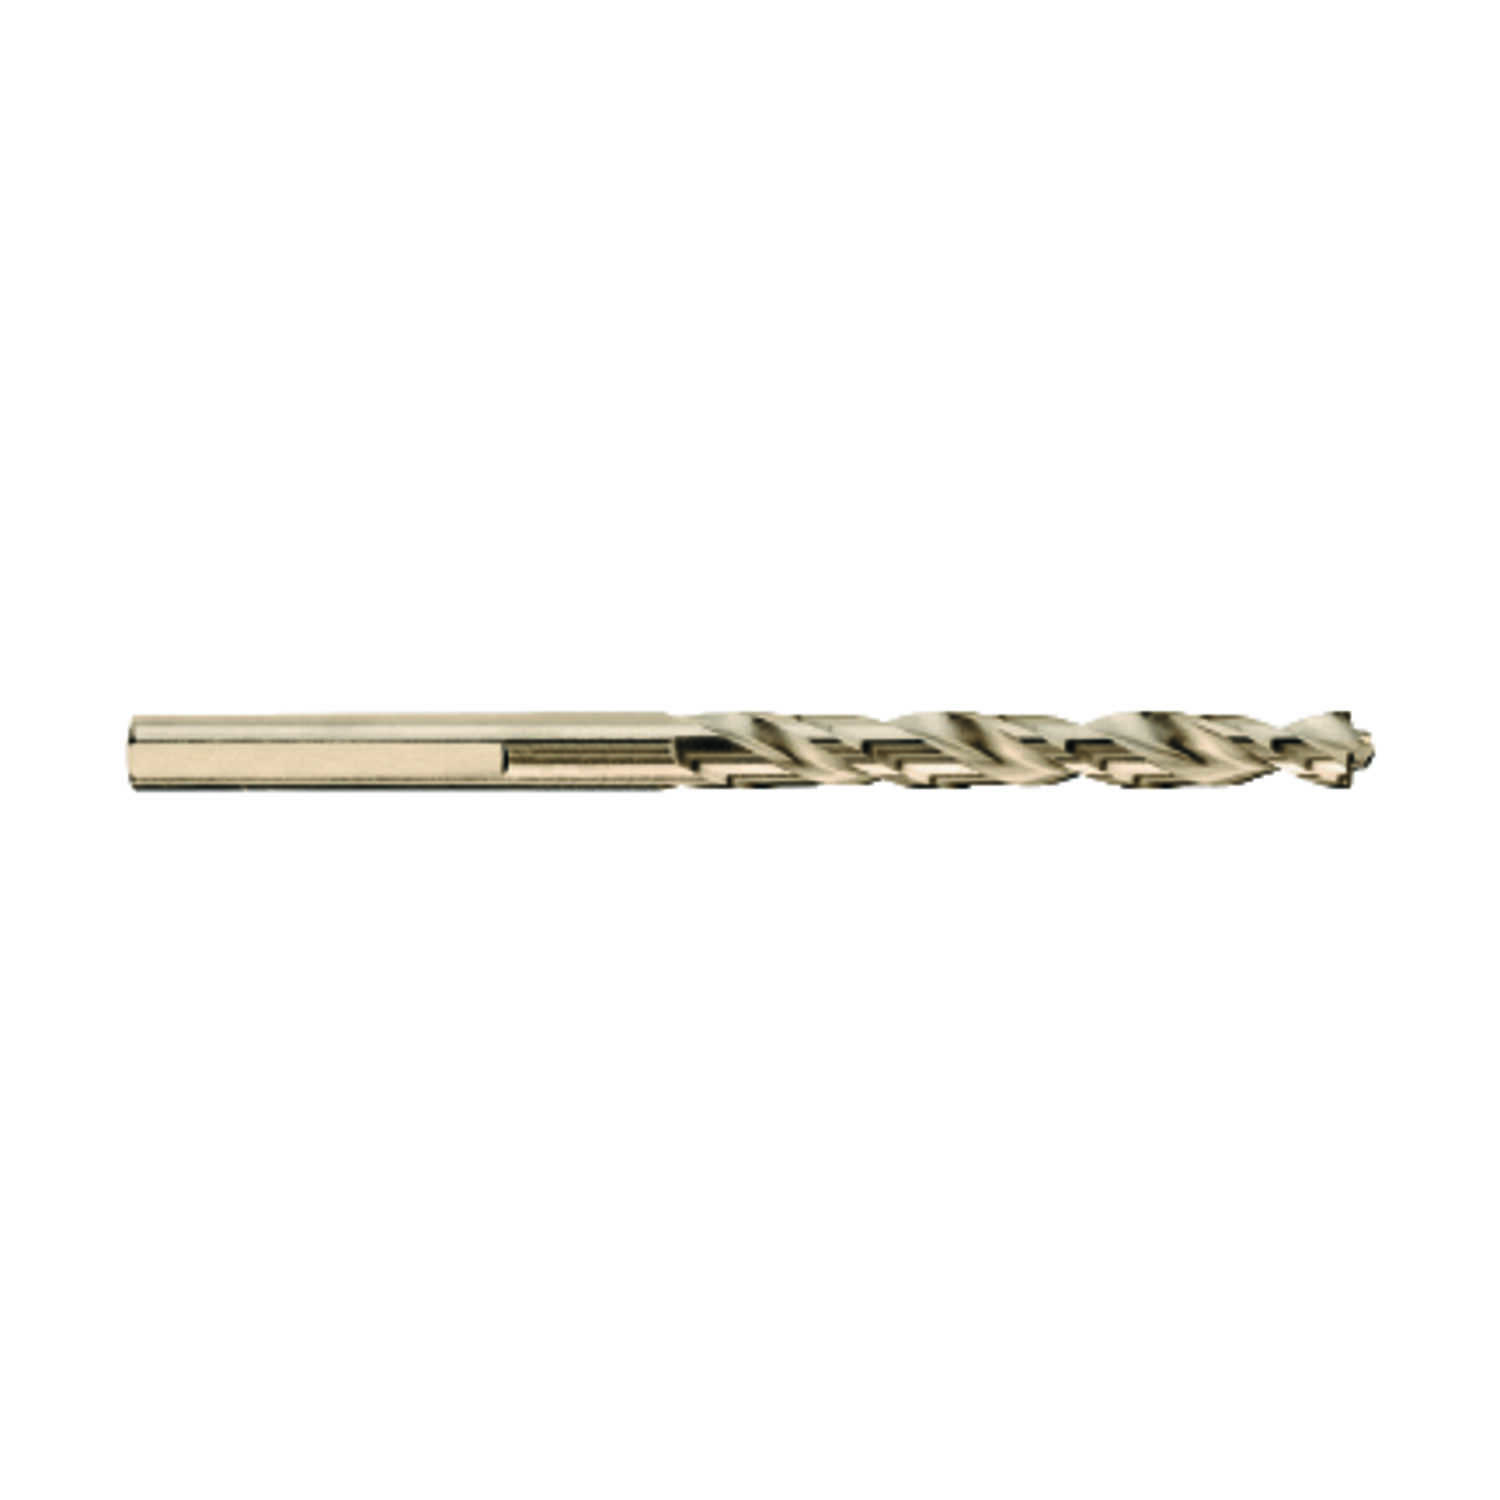 DeWalt  Pilot Point  5/32 in. Dia. x 3-1/8 in. L High Speed Steel  3-Flat Shank  1 pc. Split Point D